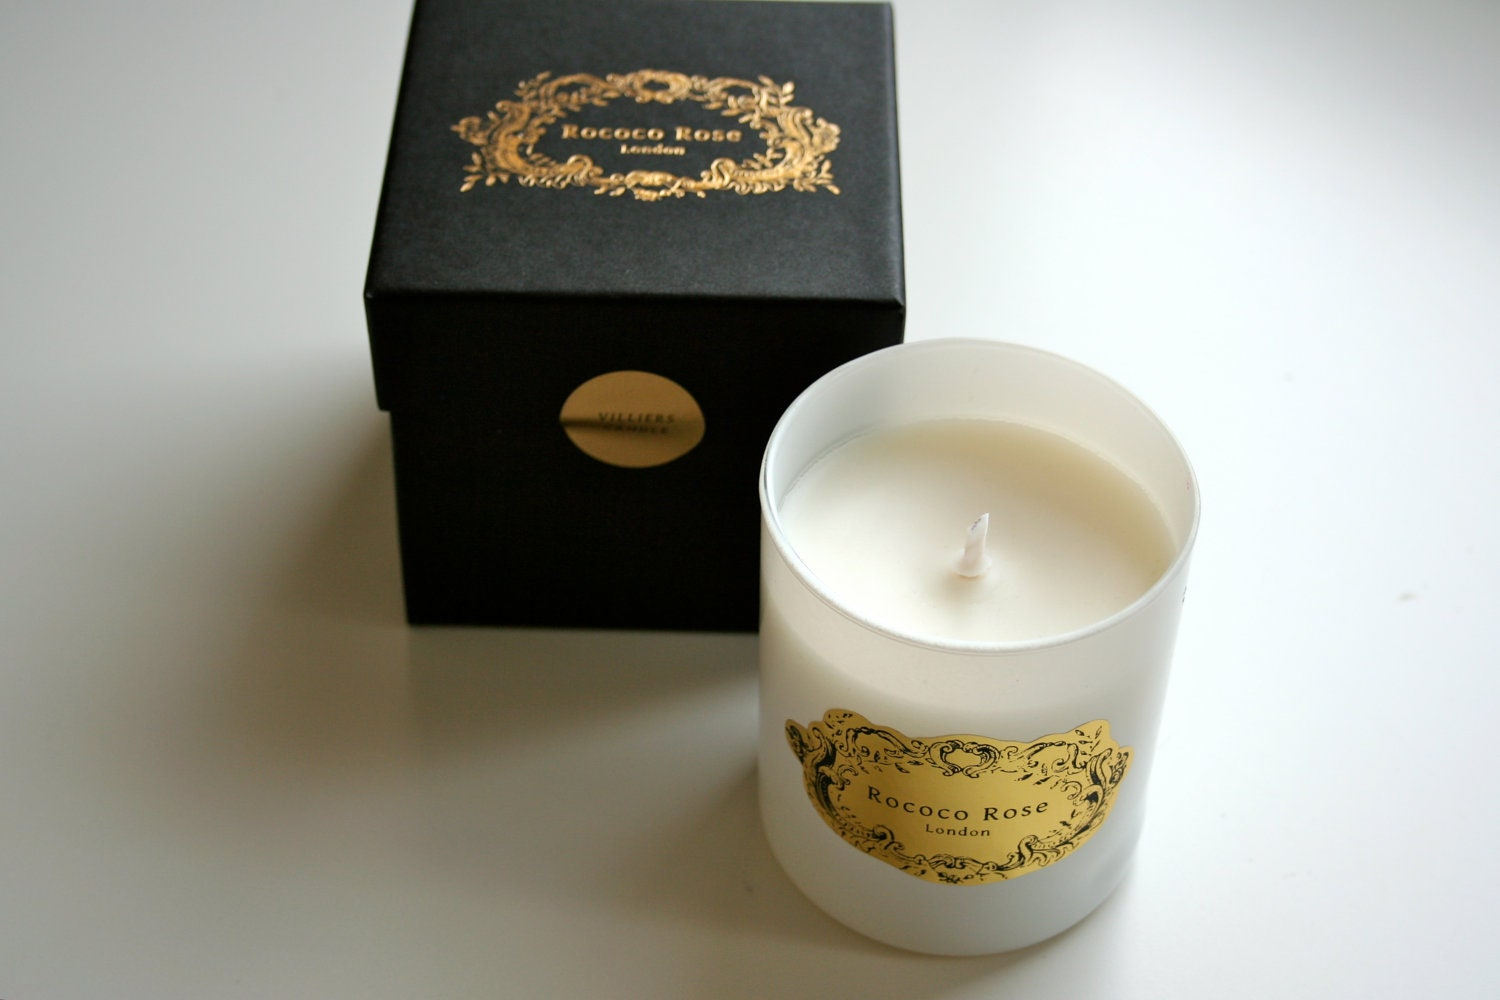 Villiers Handmade Soy Container Candle - Mimosa Scent - RococoRoseLondon